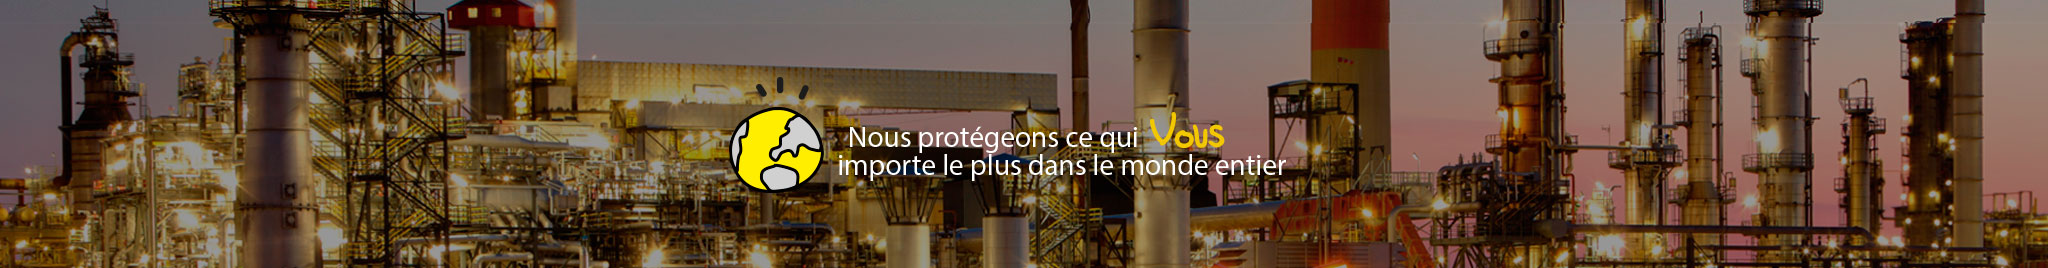 Housse de protection Atex IP66 - IP68 · Atex Delvalle